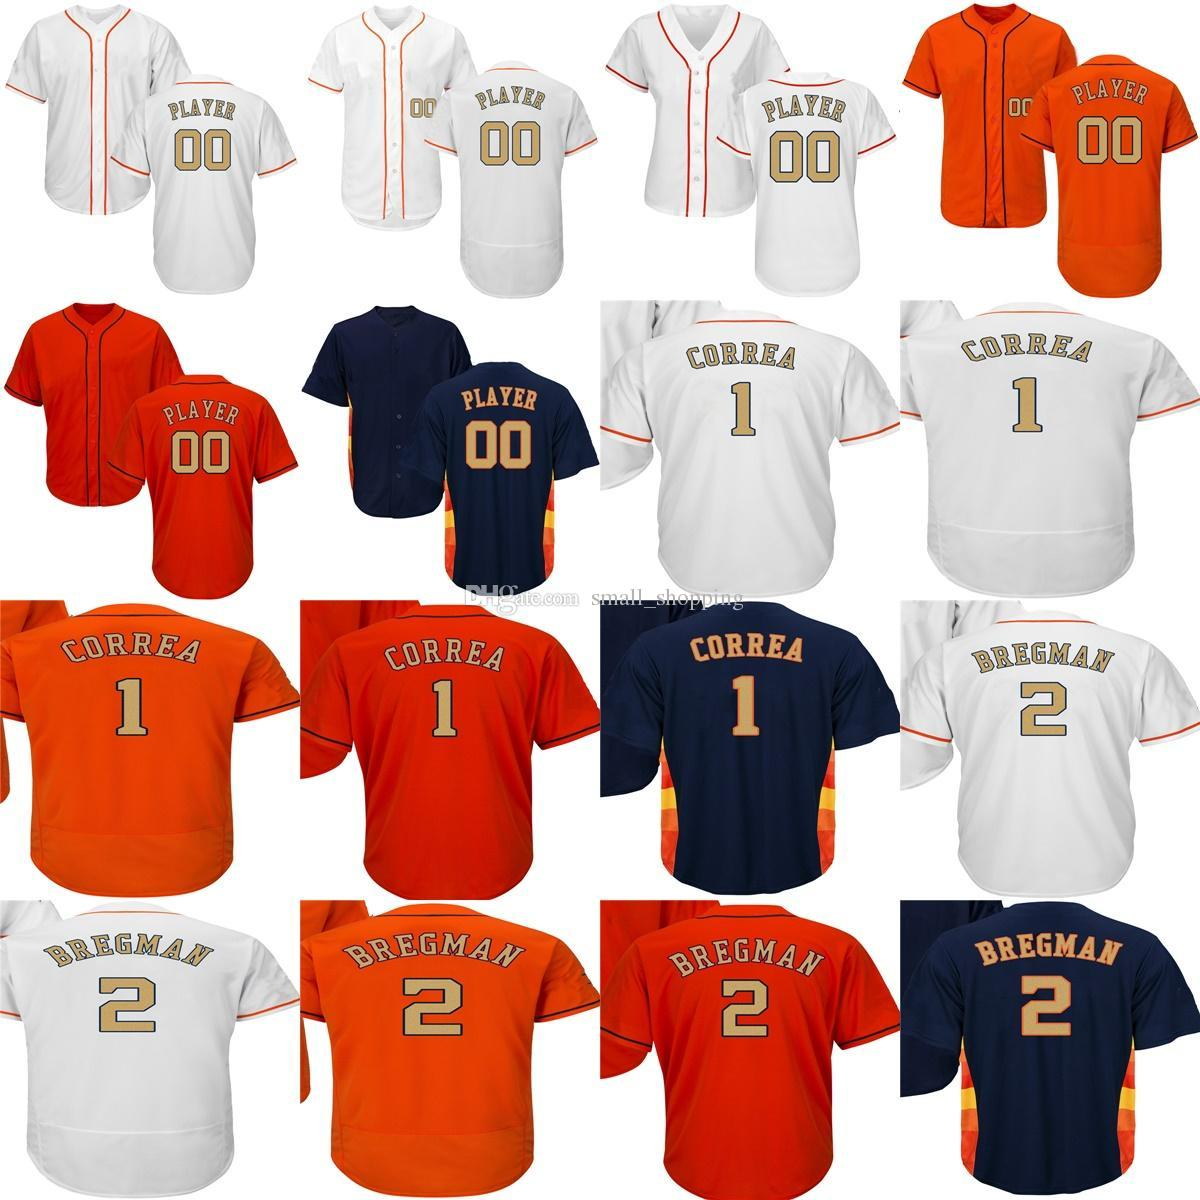 new product 4917d 8d972 coupon code for 2 alex bregman jersey youth c0d3a 5400a